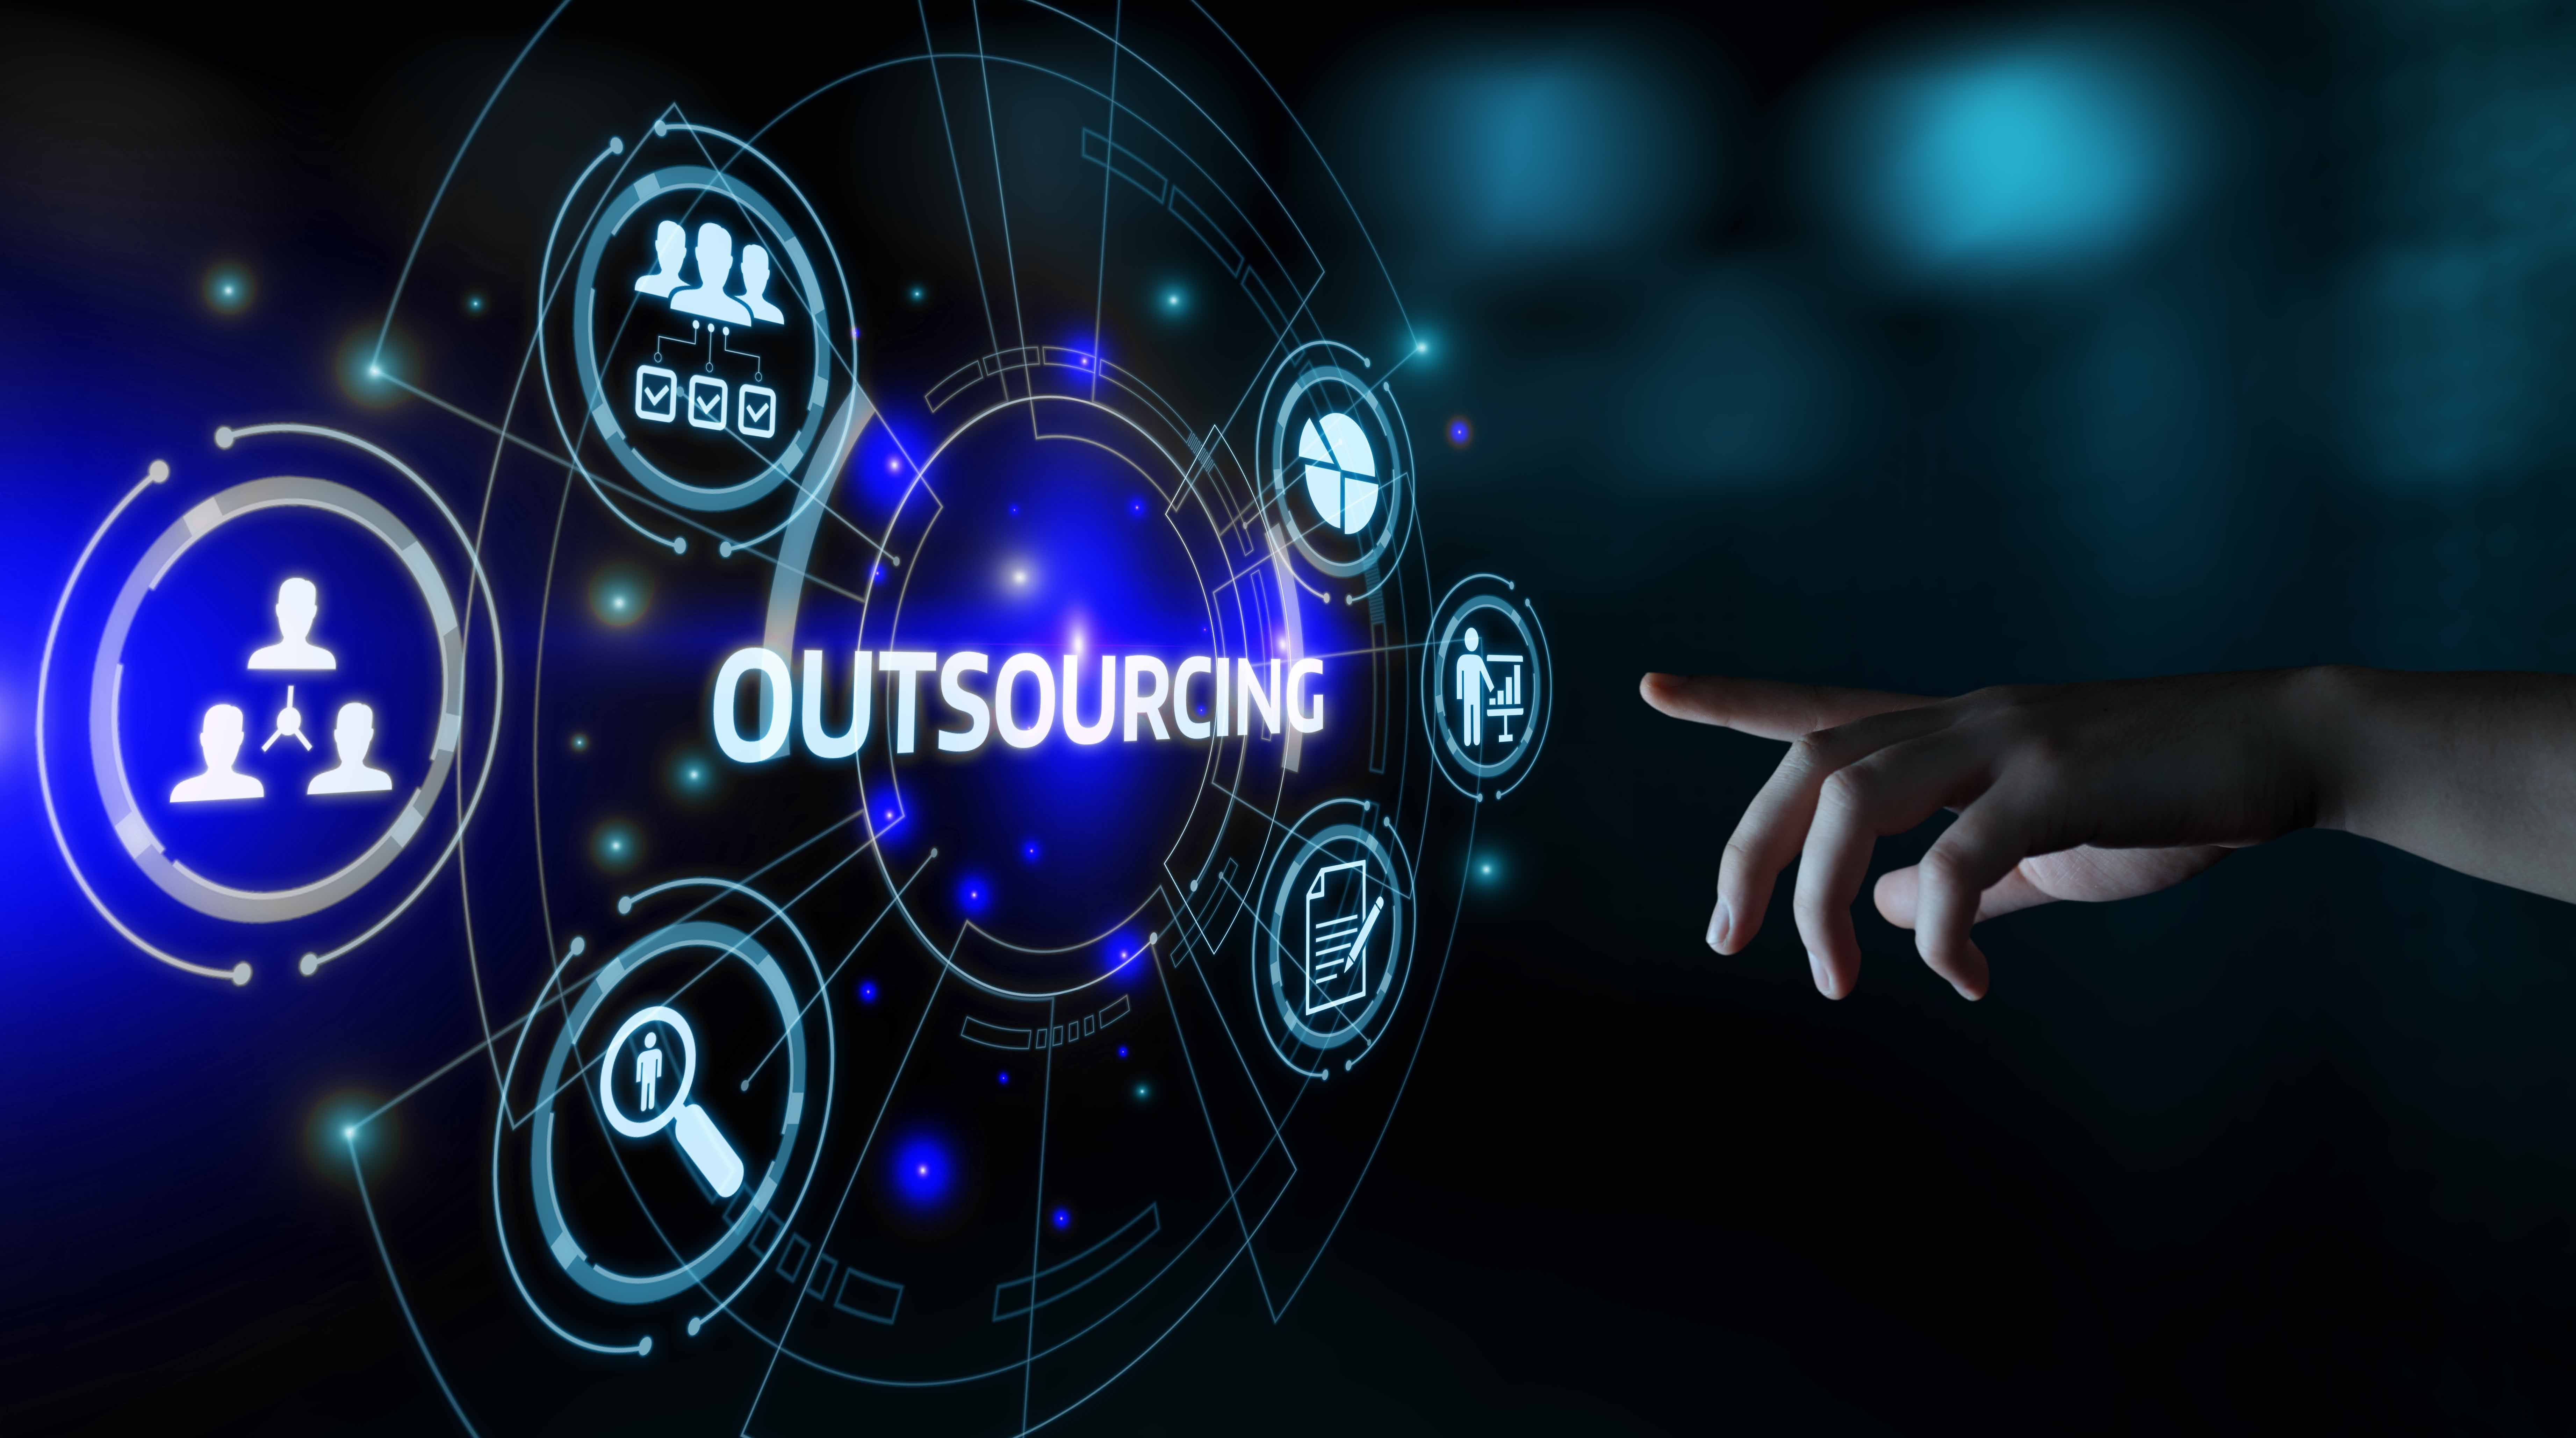 hand reaching out towards electronic 'outsourcing' icons